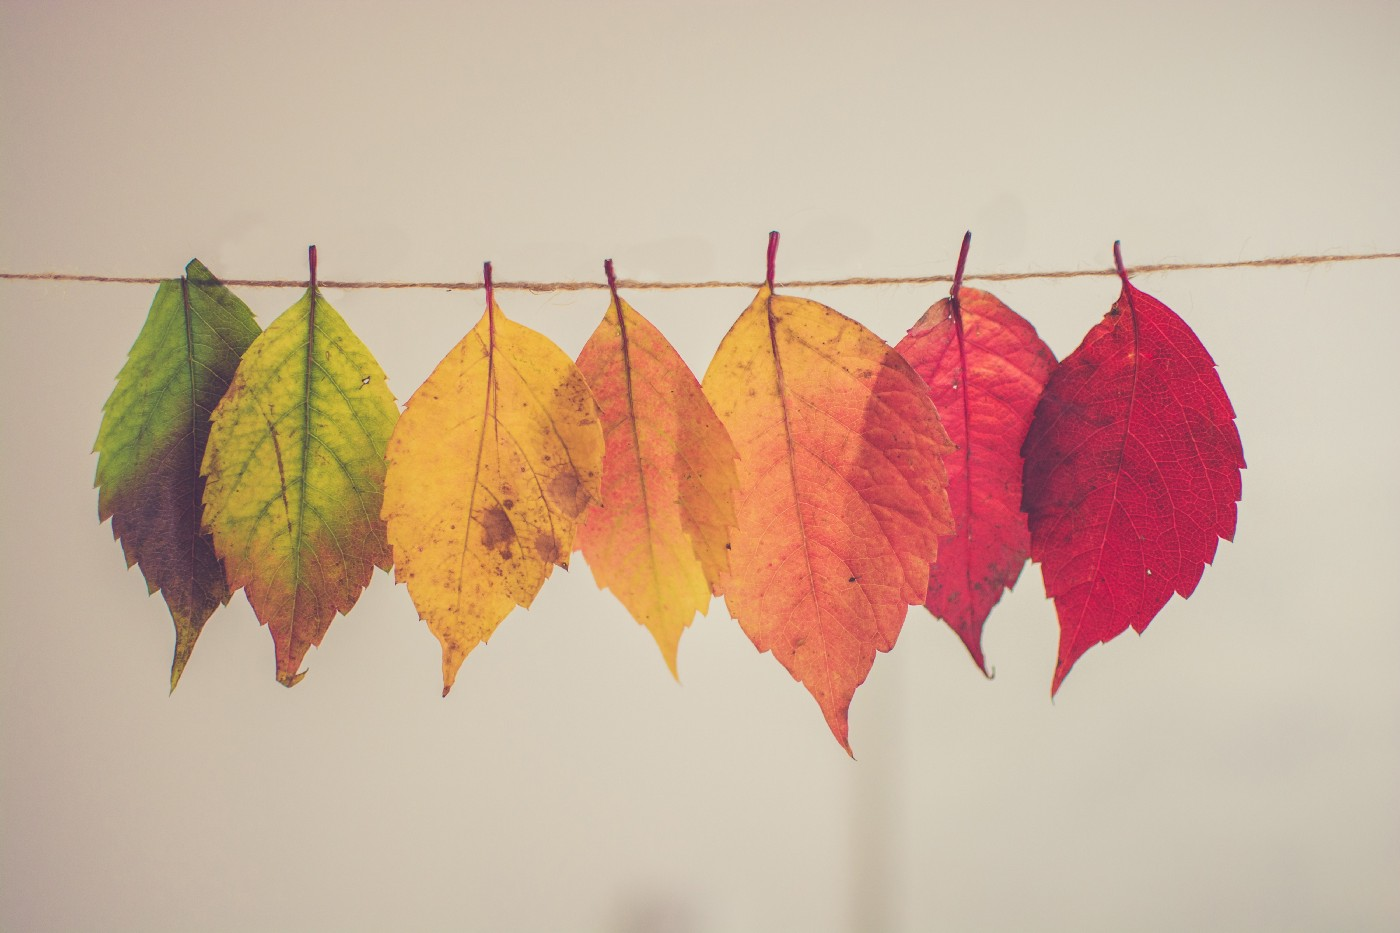 string with multi-colored leaves transitioning colors from spring to fall